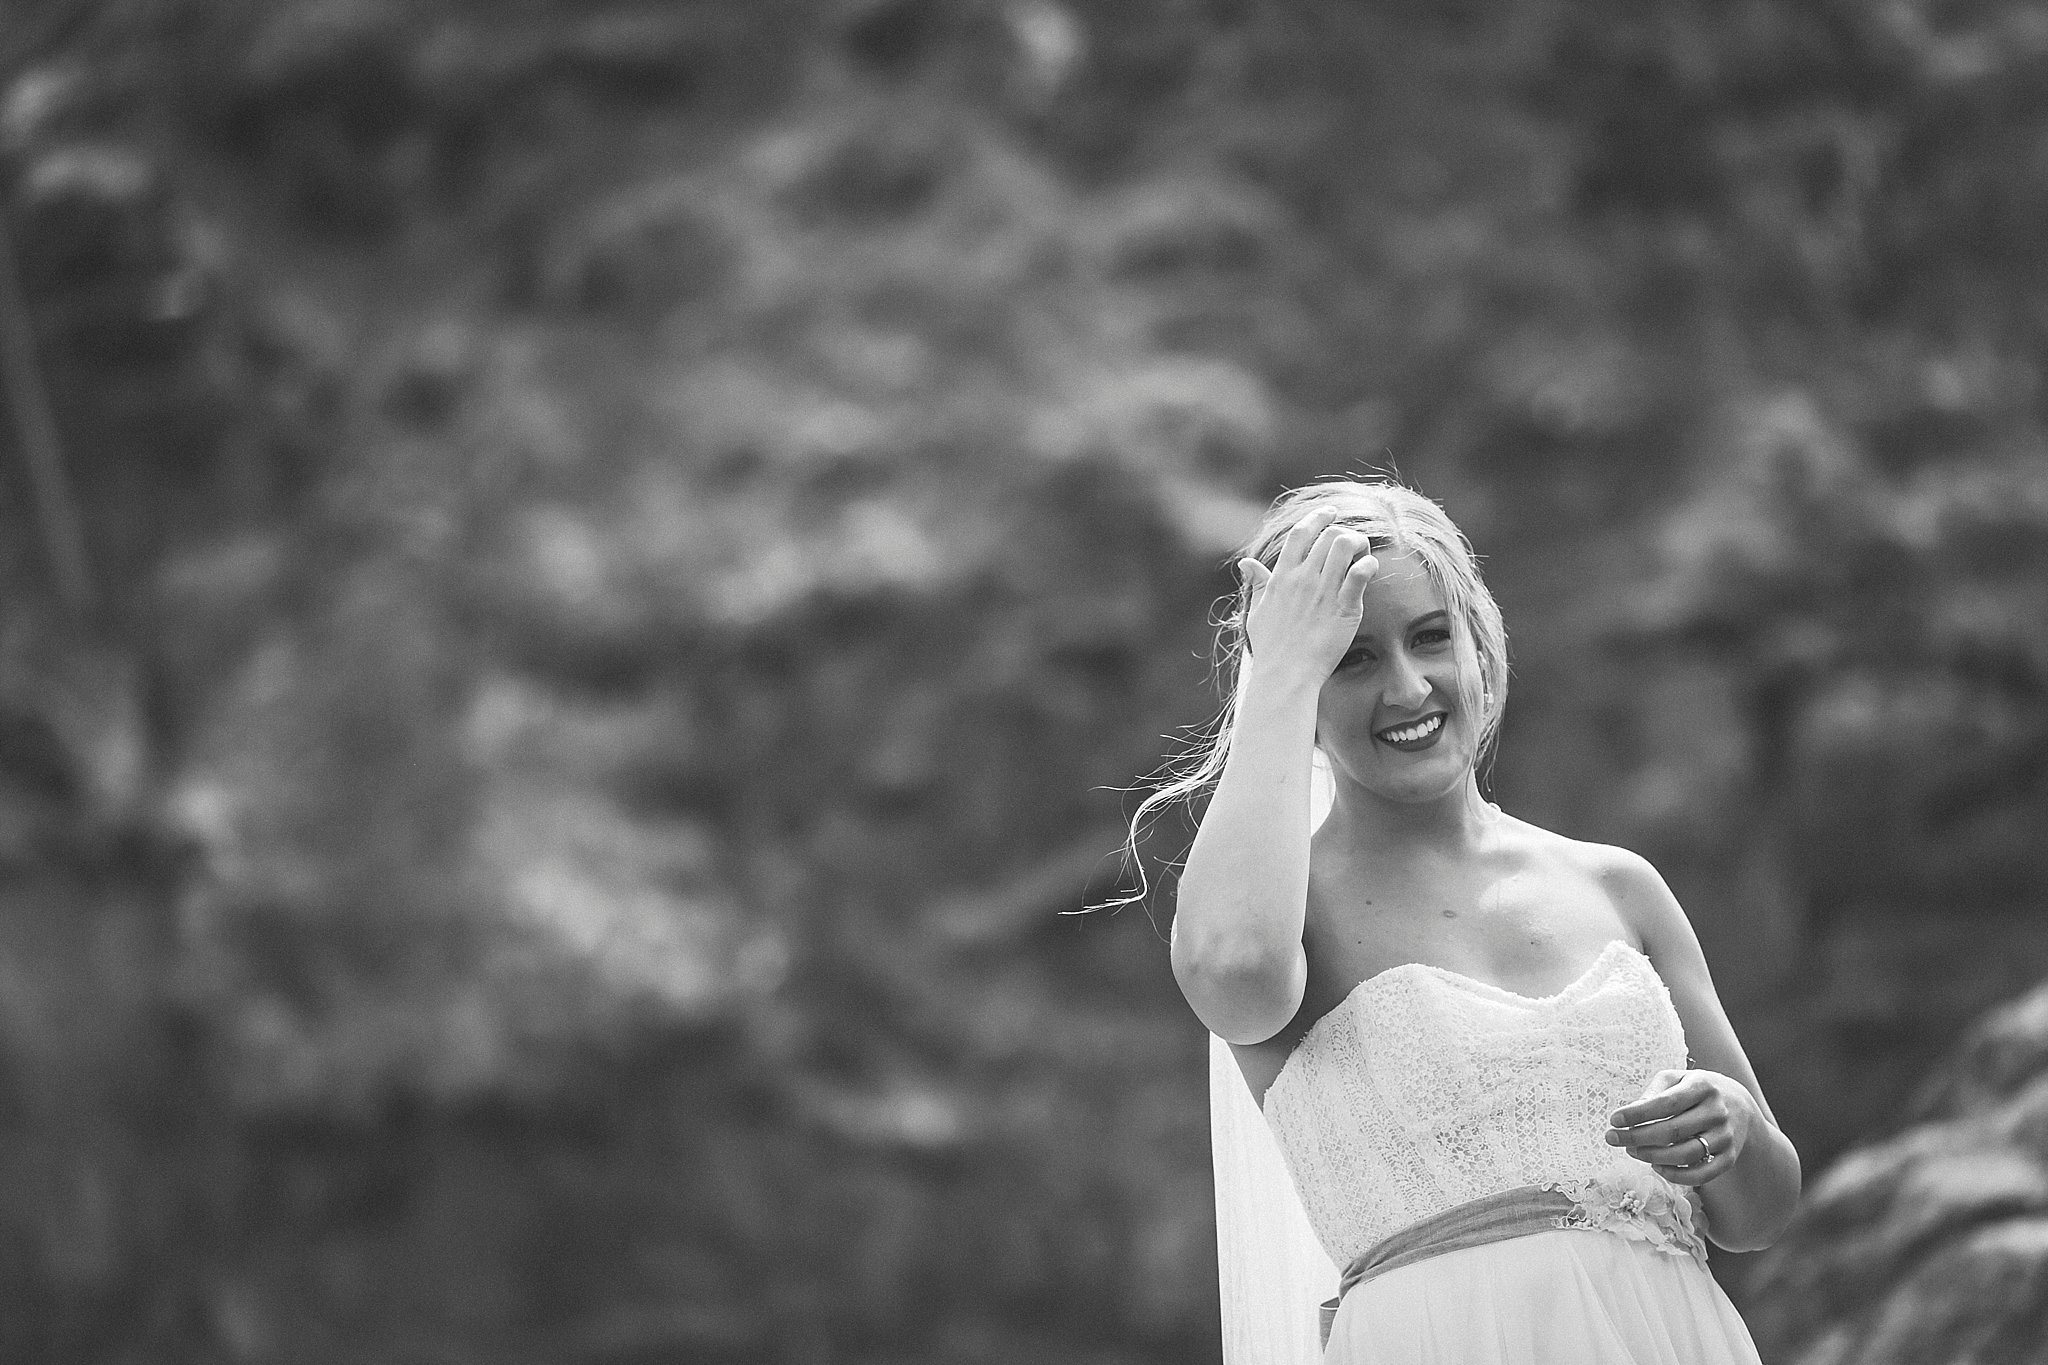 A bride in Quidi Vidi for her wedding photography in St. John's, Newfoundland